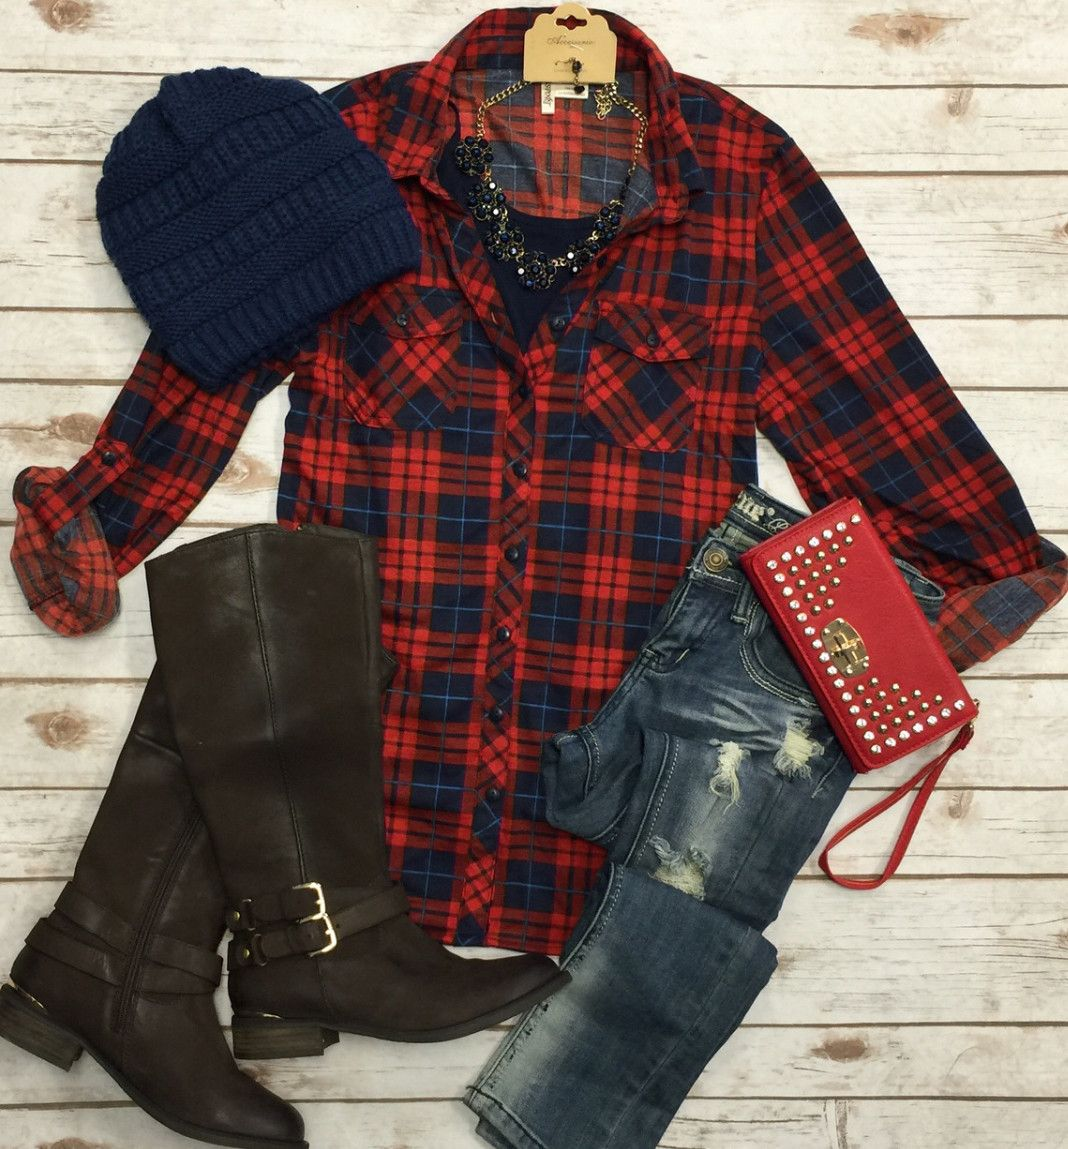 Red flannel shirt black jeans  Penny Plaid Flannel Top RedBlue  outfits  Pinterest  Plaid